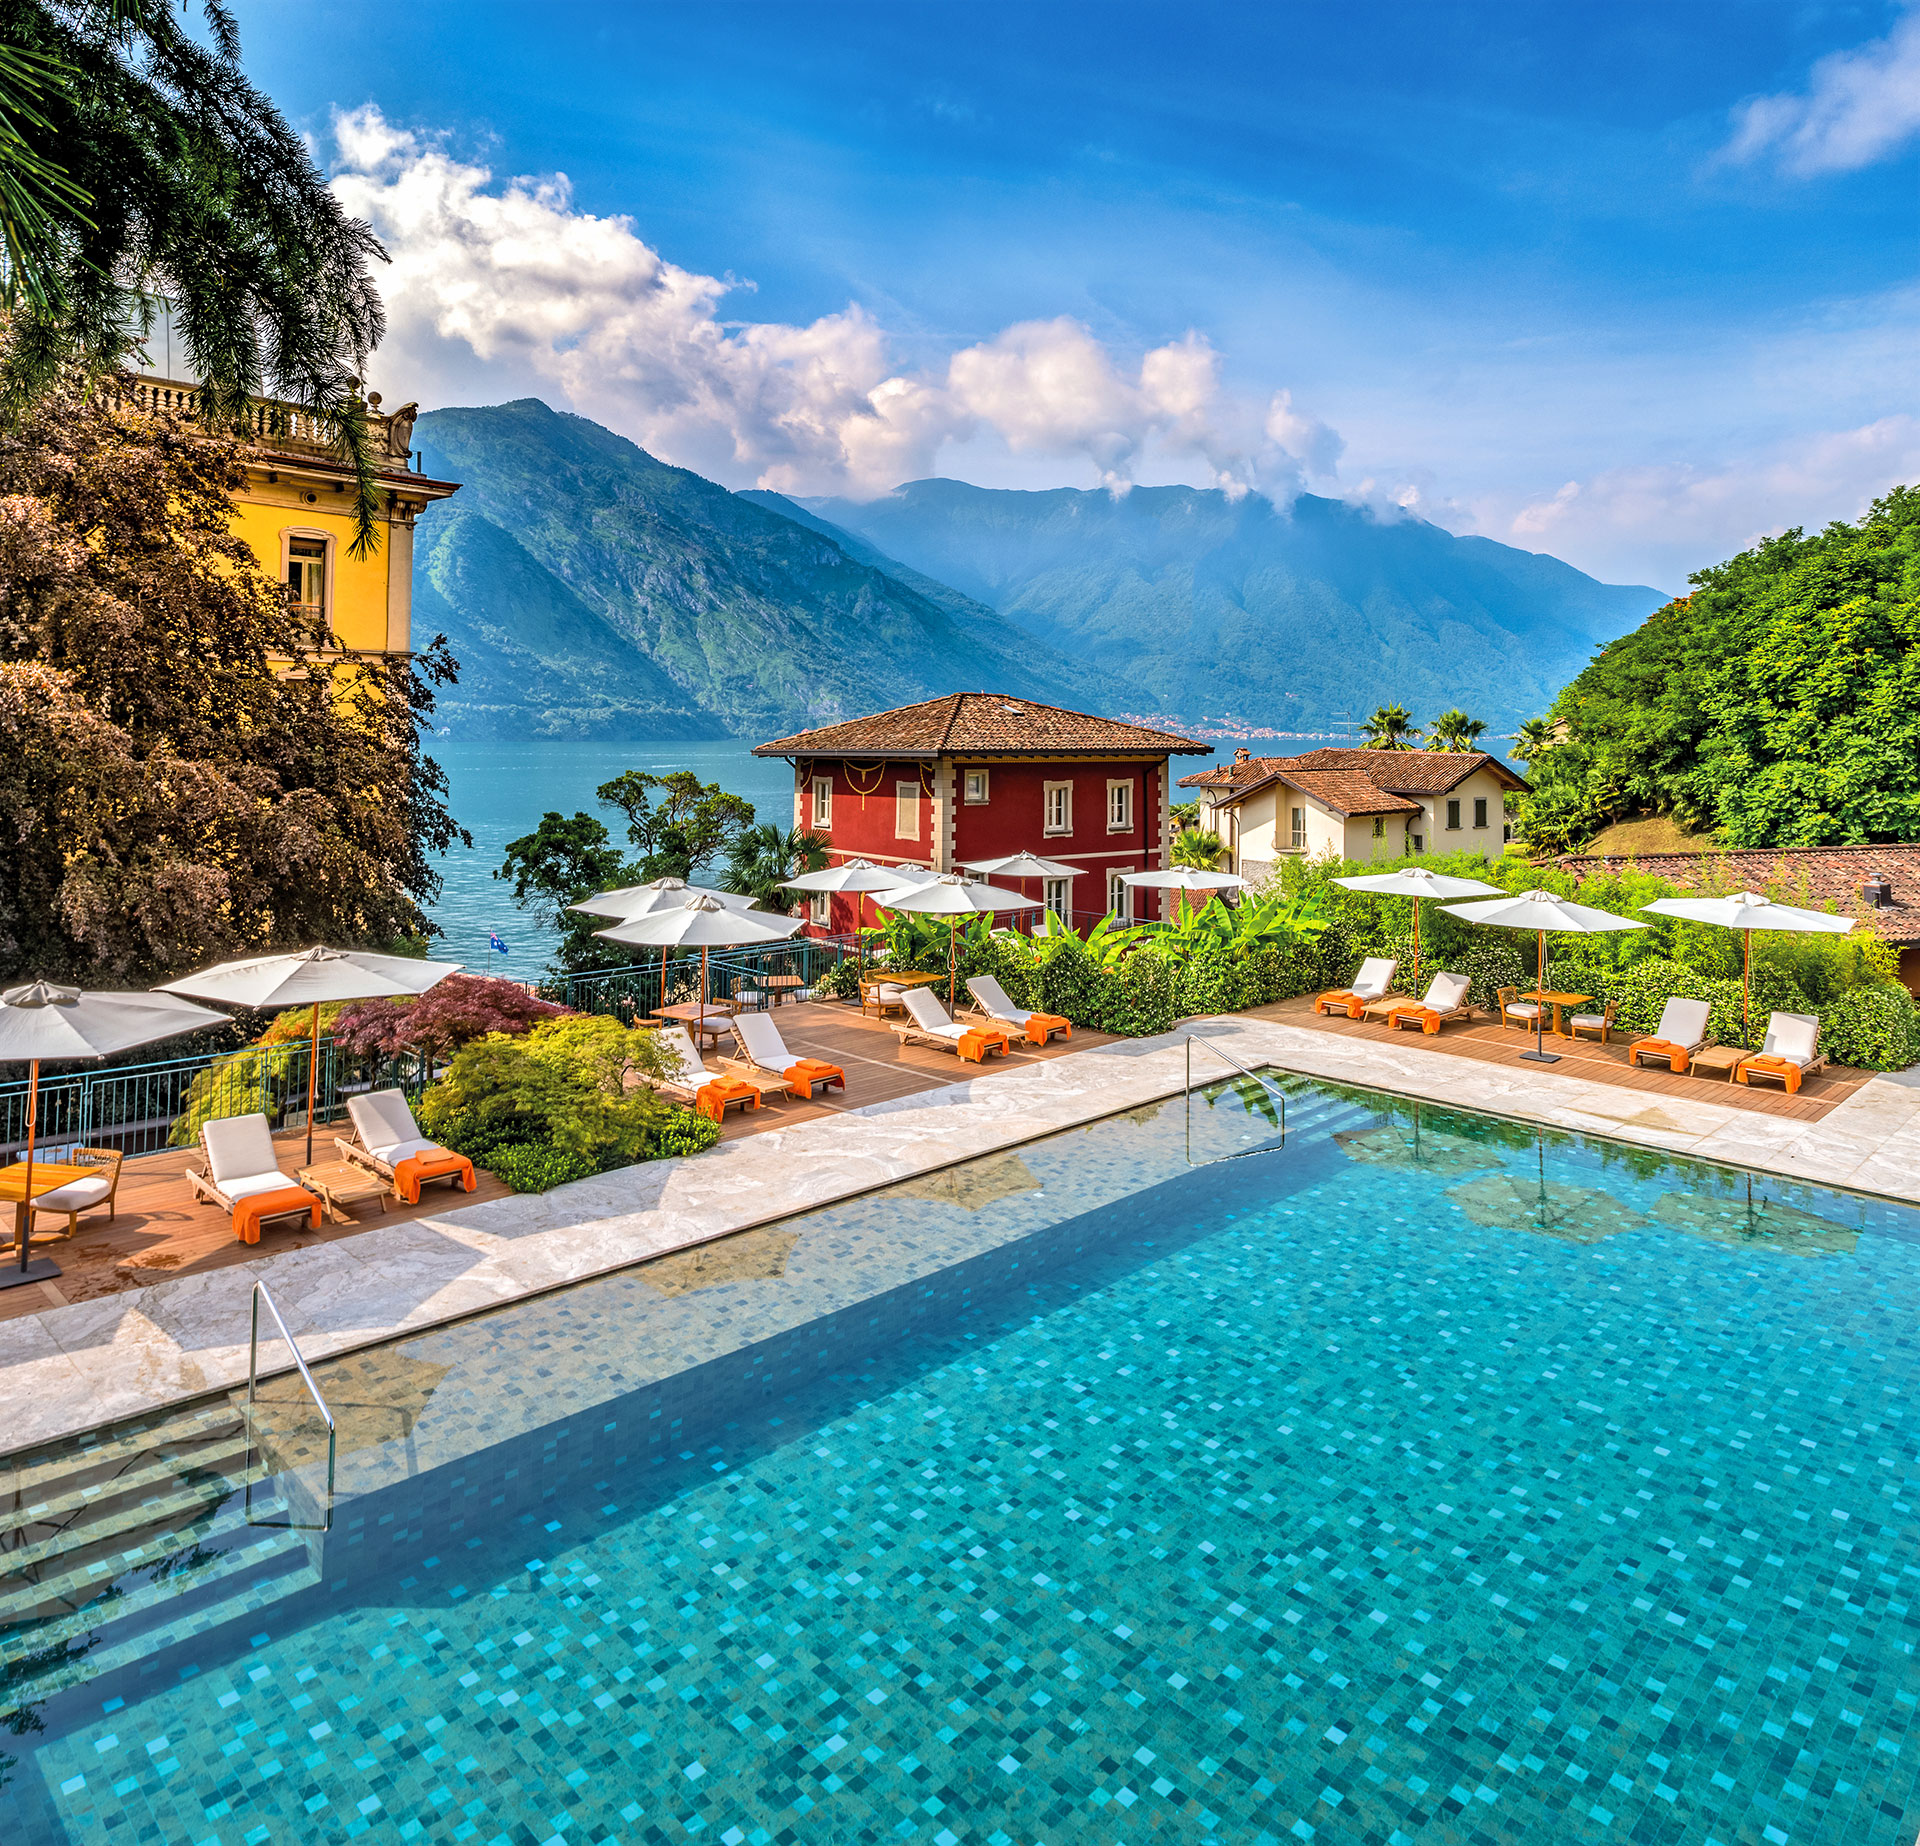 Grand Hotel Tremezzo - Lake Como